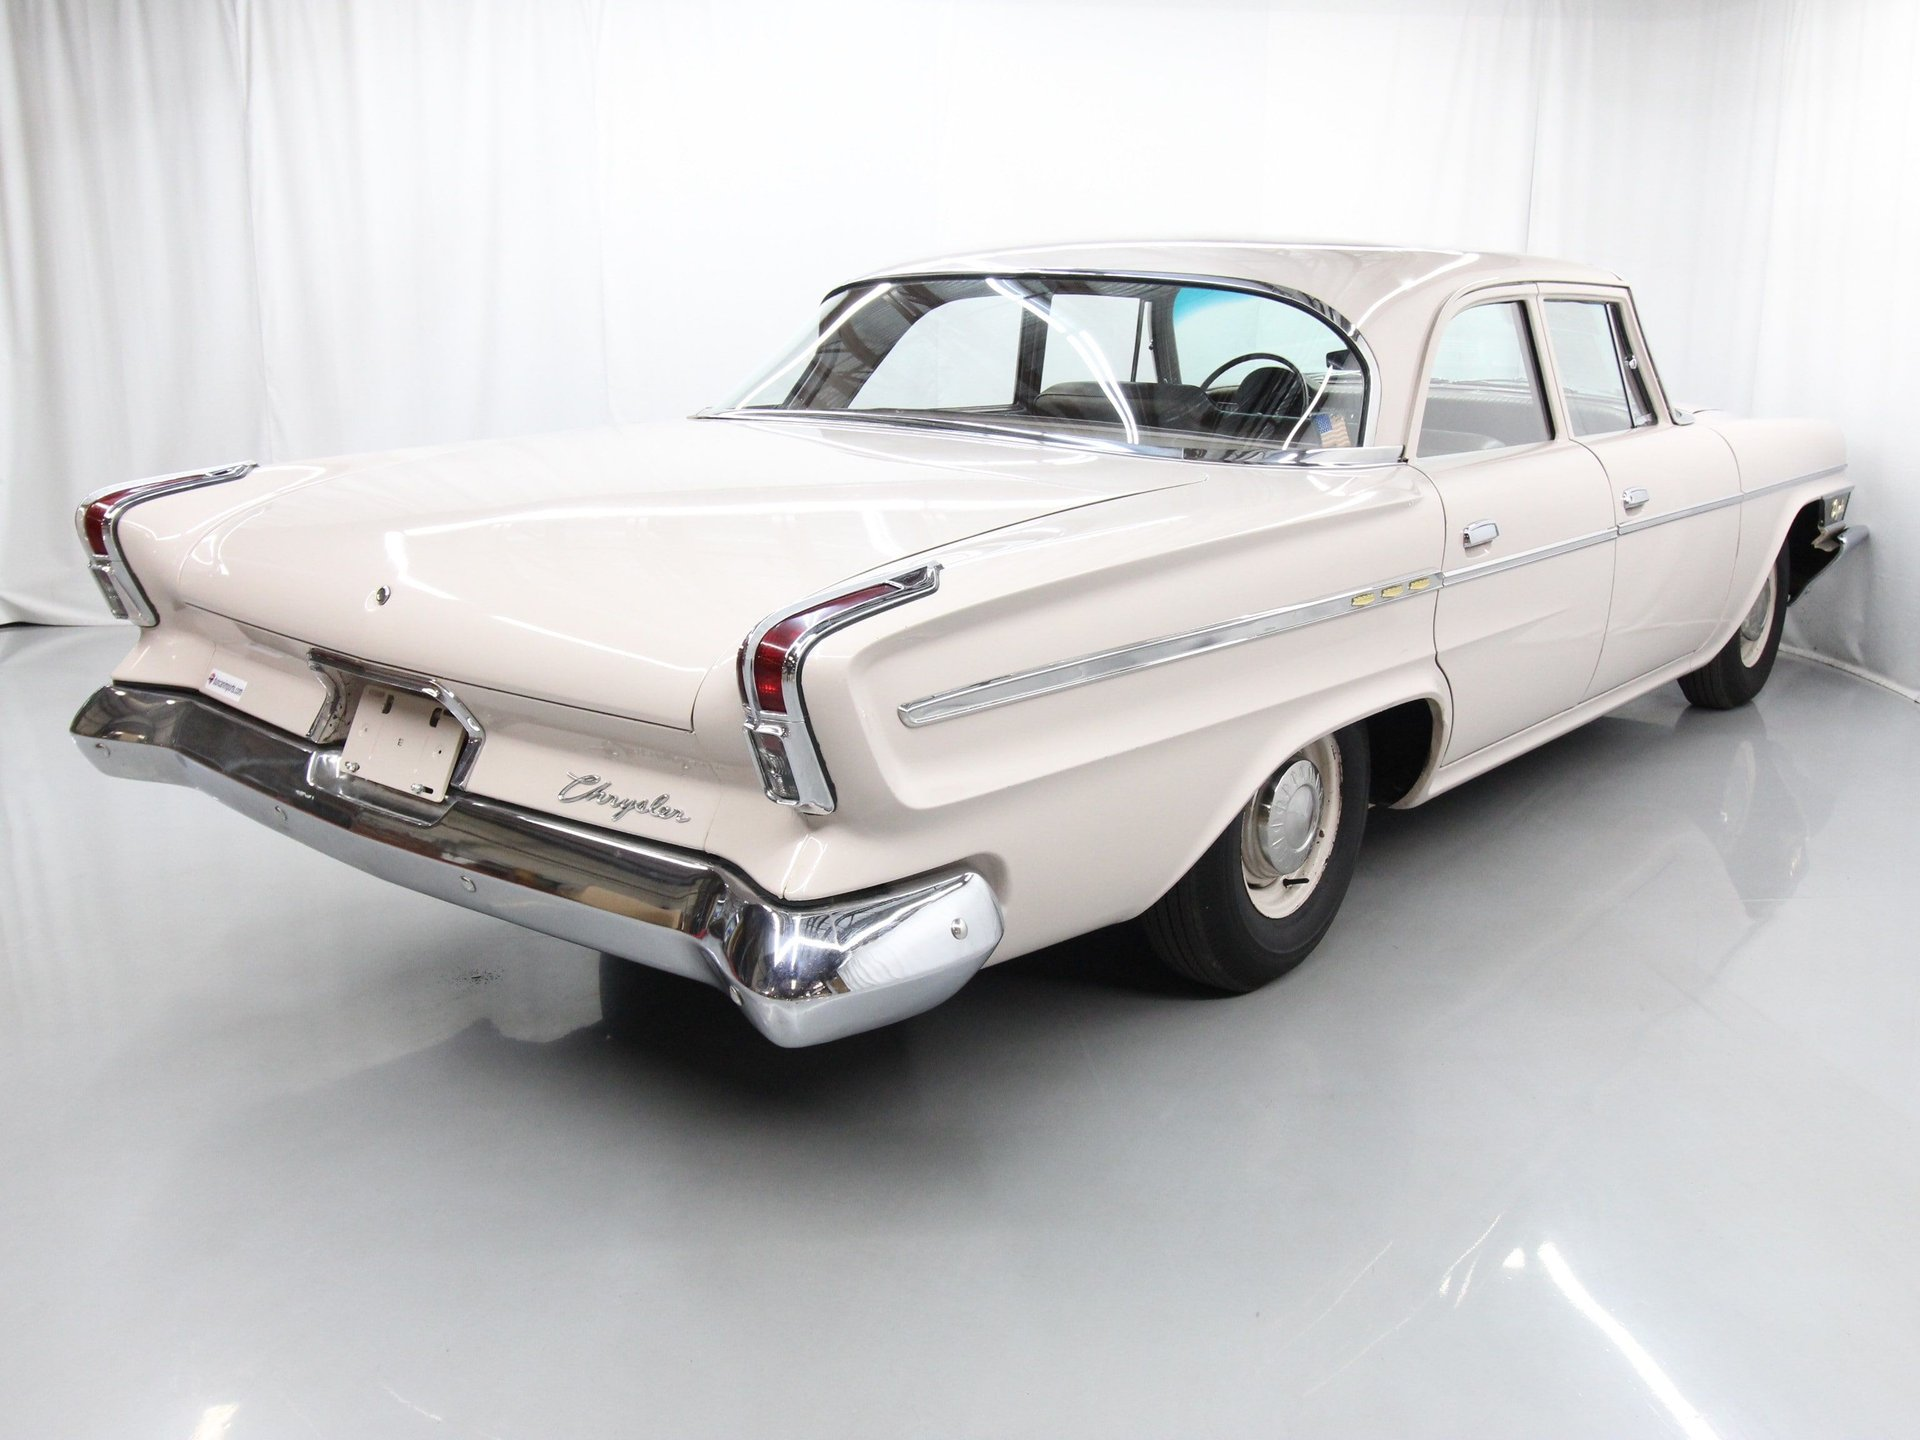 1962 Chrysler Newport